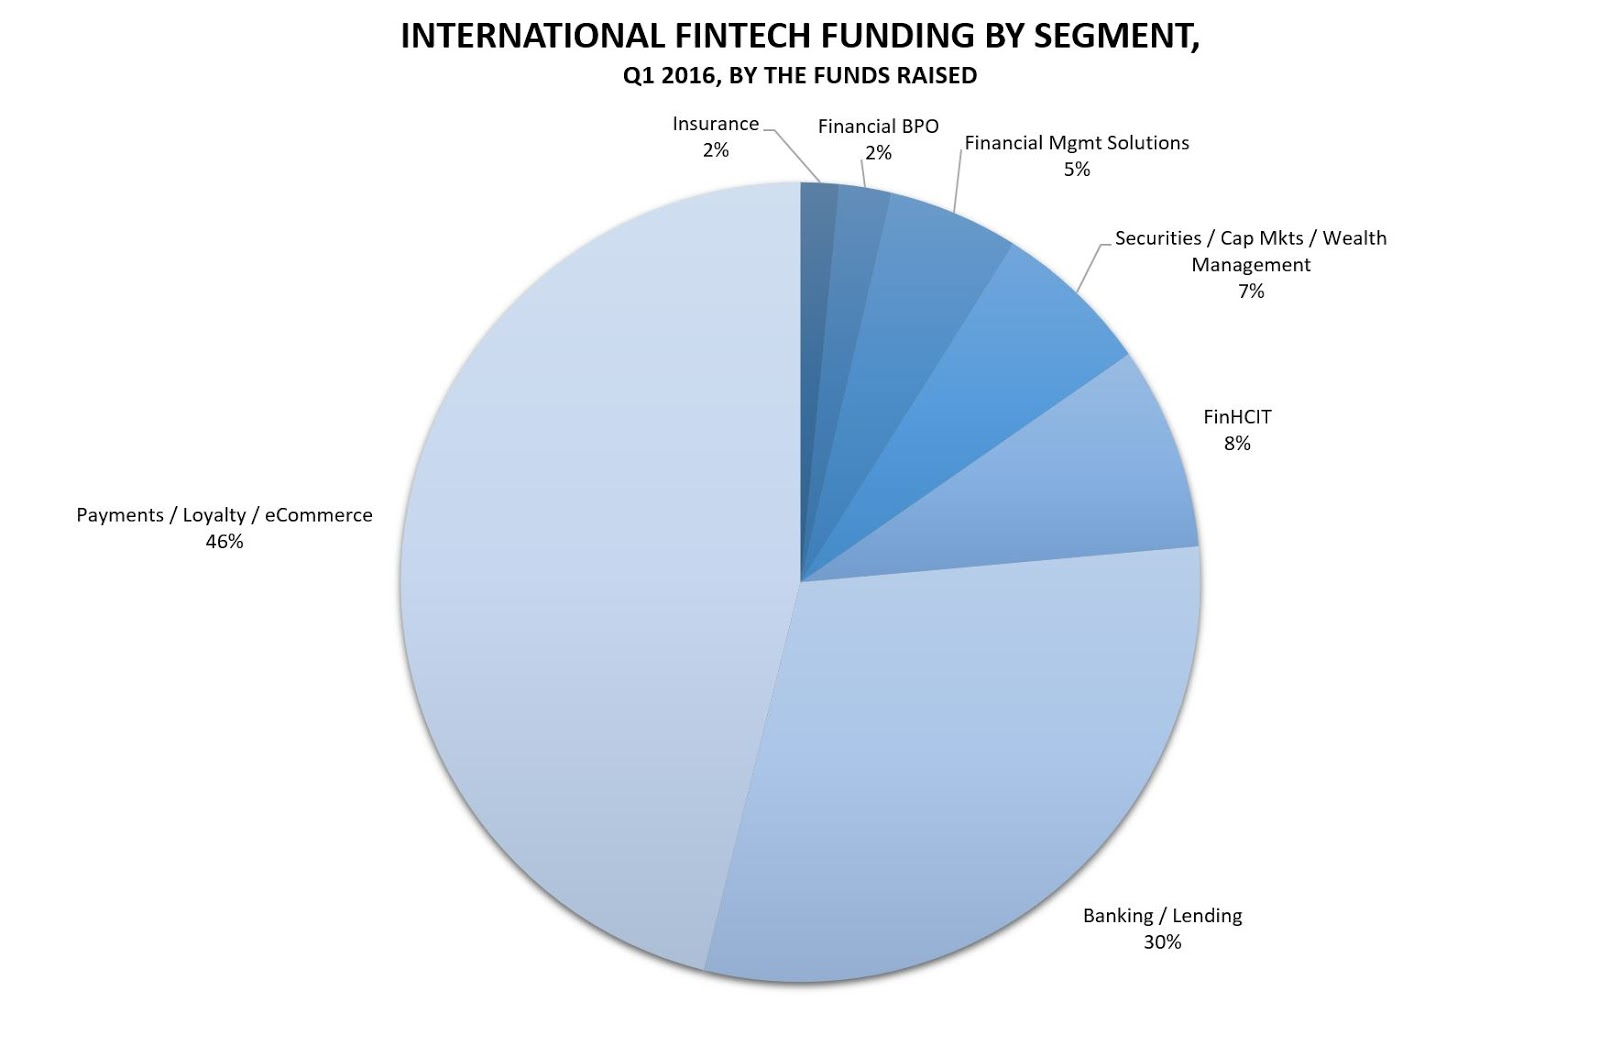 Investments in FinTech in Q1 2016 (by the funds raised)